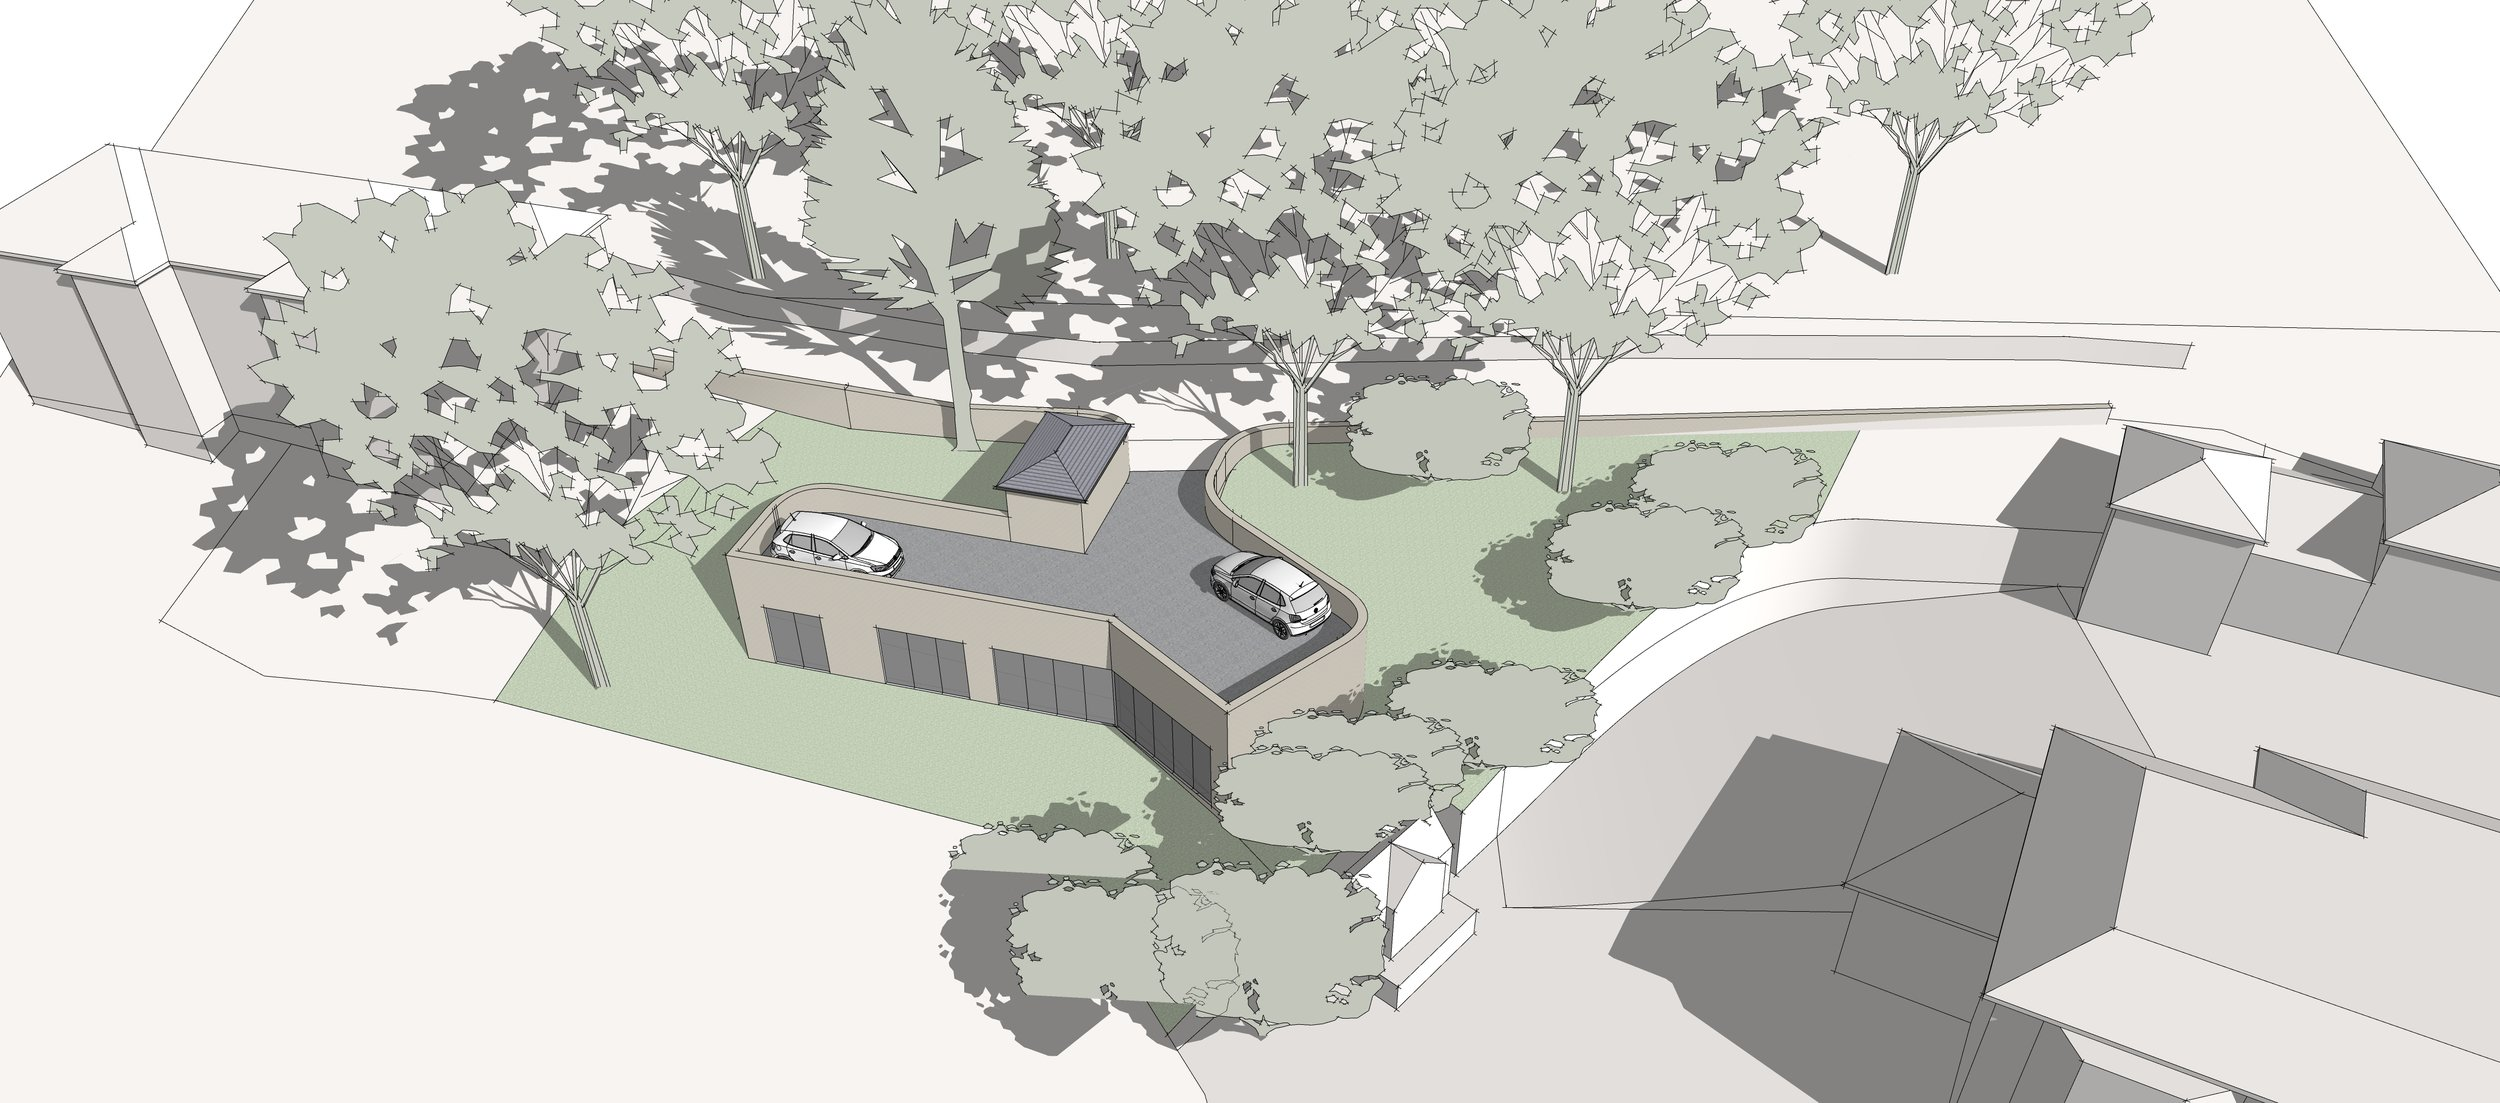 Feasibility Study for a New House on a Sloping Site in Matlock Bath